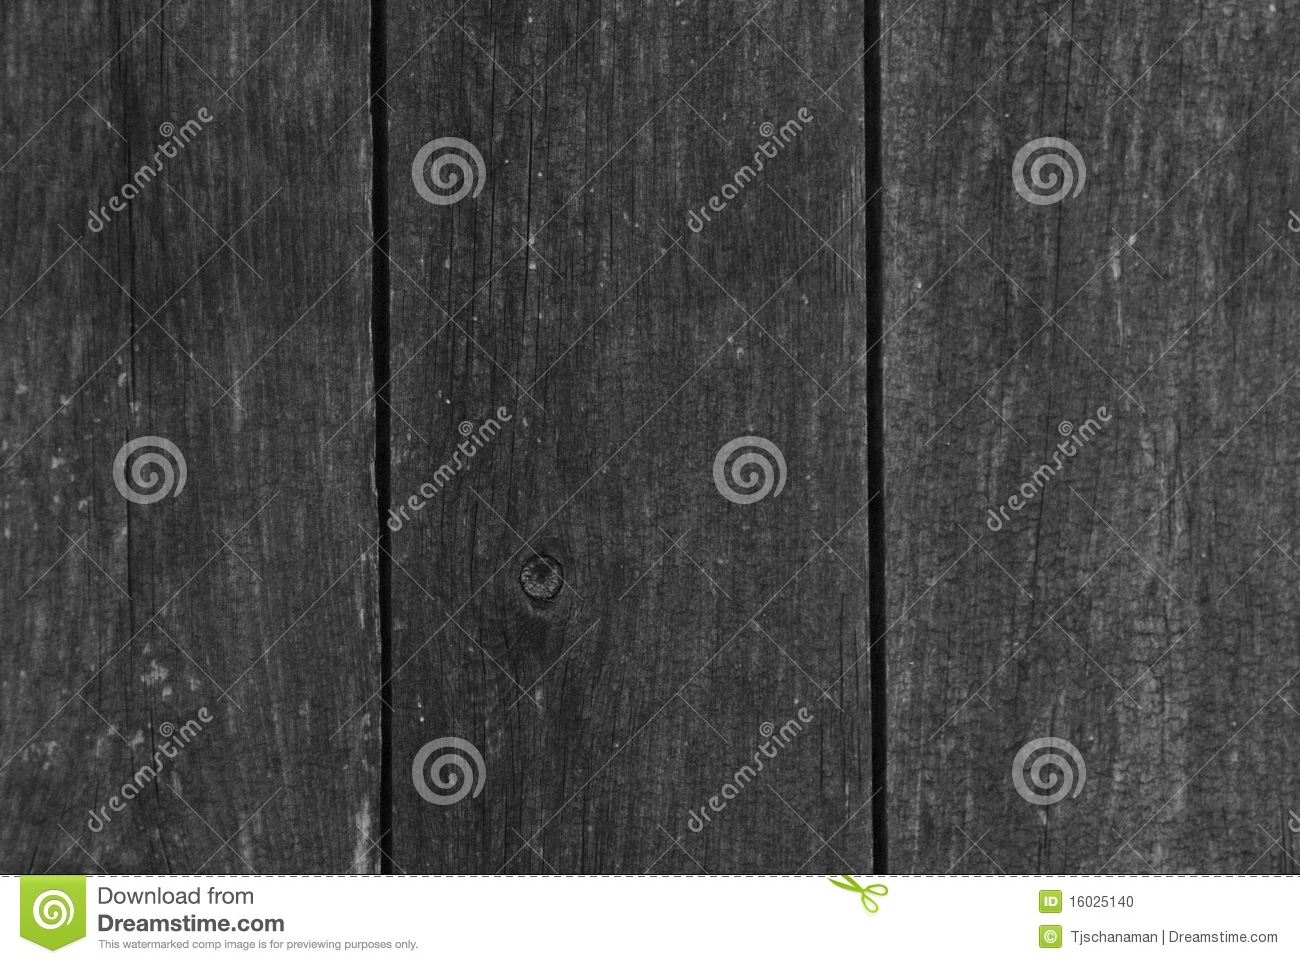 Wood Grain Black And White Stock Photo   Image  16025140